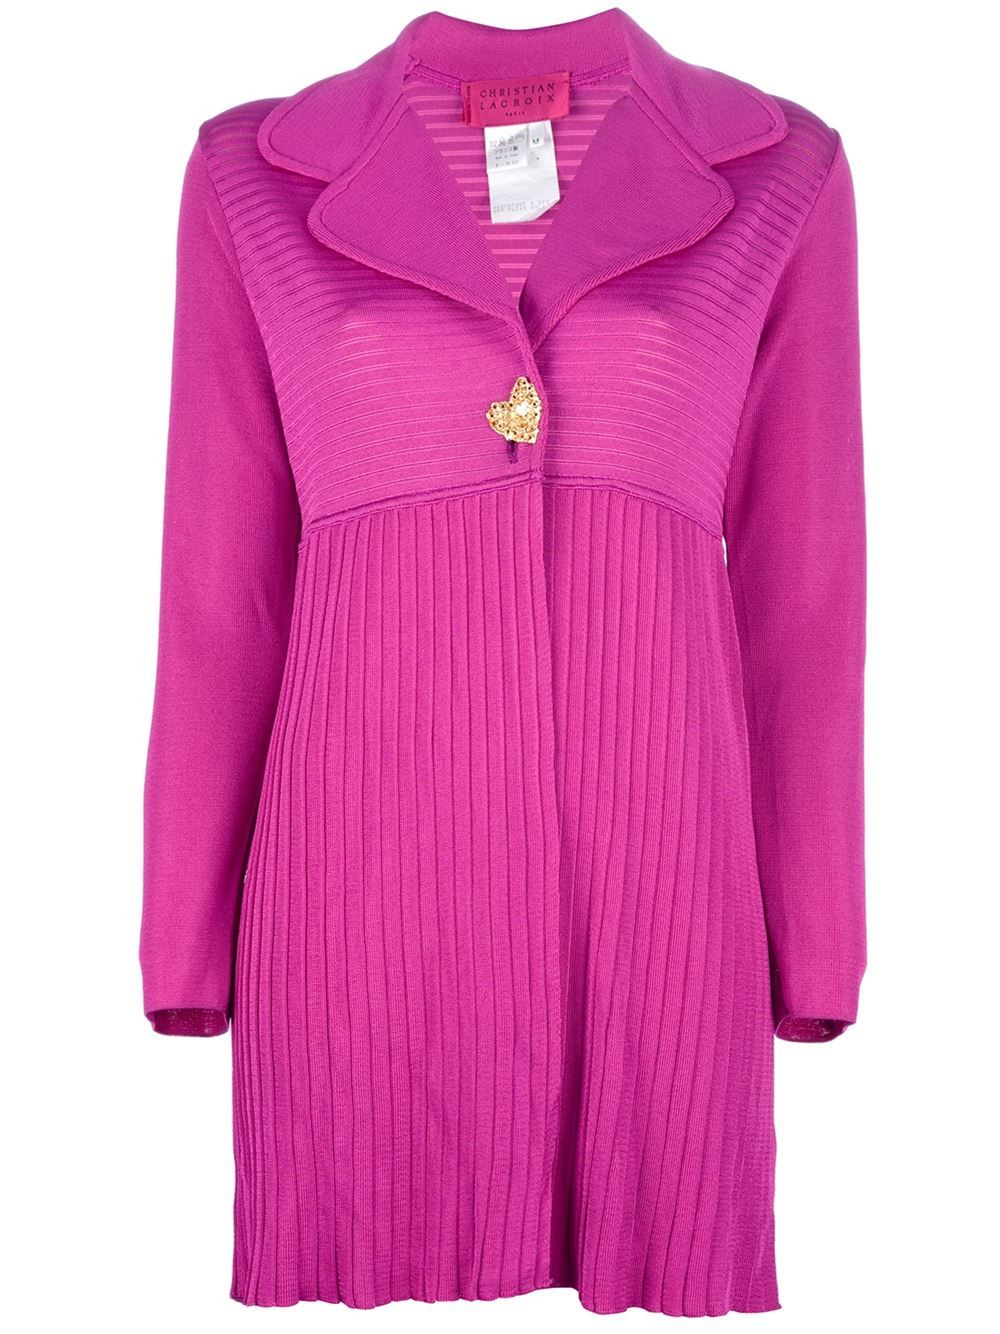 Pink ribbed cardigan from Christian Lacroix featuring a large notched lapel, a gold-tone heart button fastening and long straight sleeves with button fastening cuffs. Excellent condition.